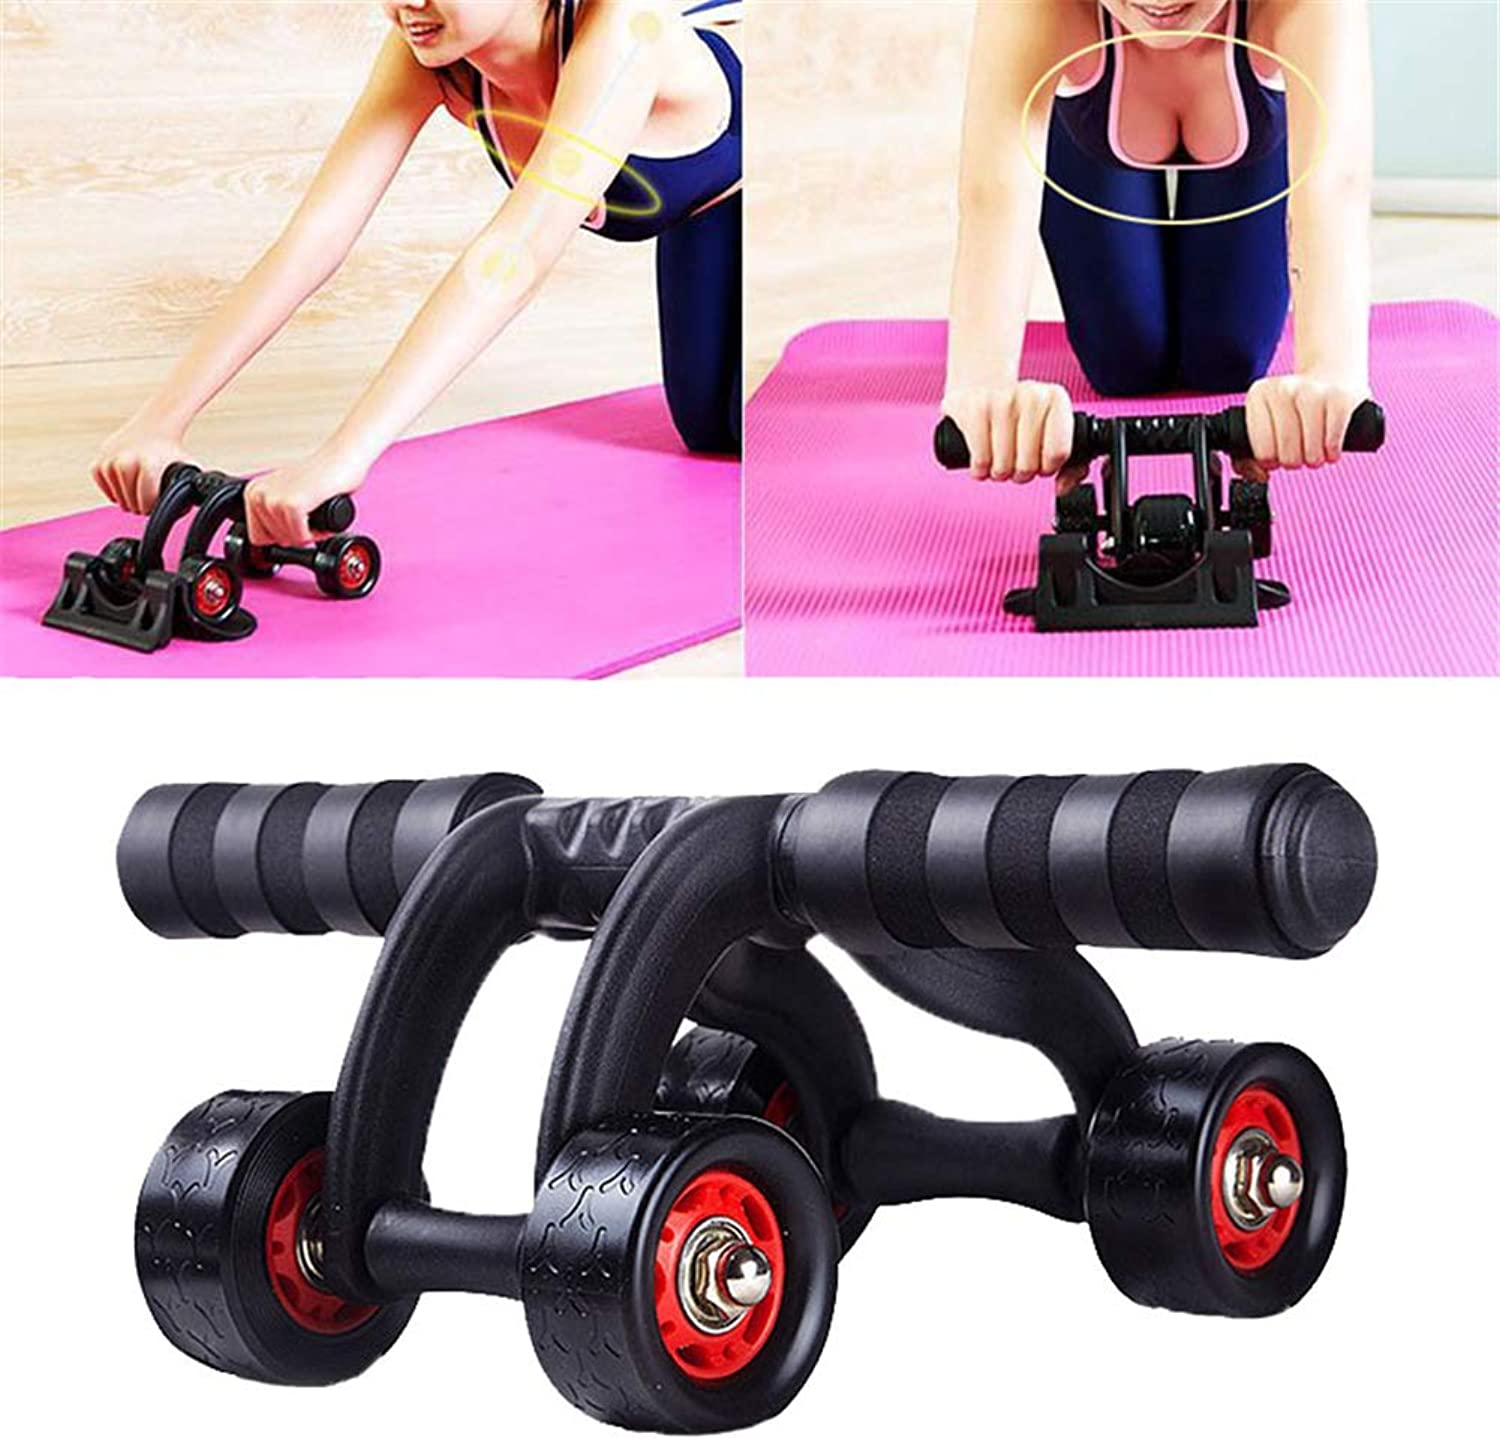 Ab Wheel Fitness Equipment 4 Wheels Innovative Ergonomic Abdominal Roller Carving System - Home Gym Boxing Exercise Workout Equipment